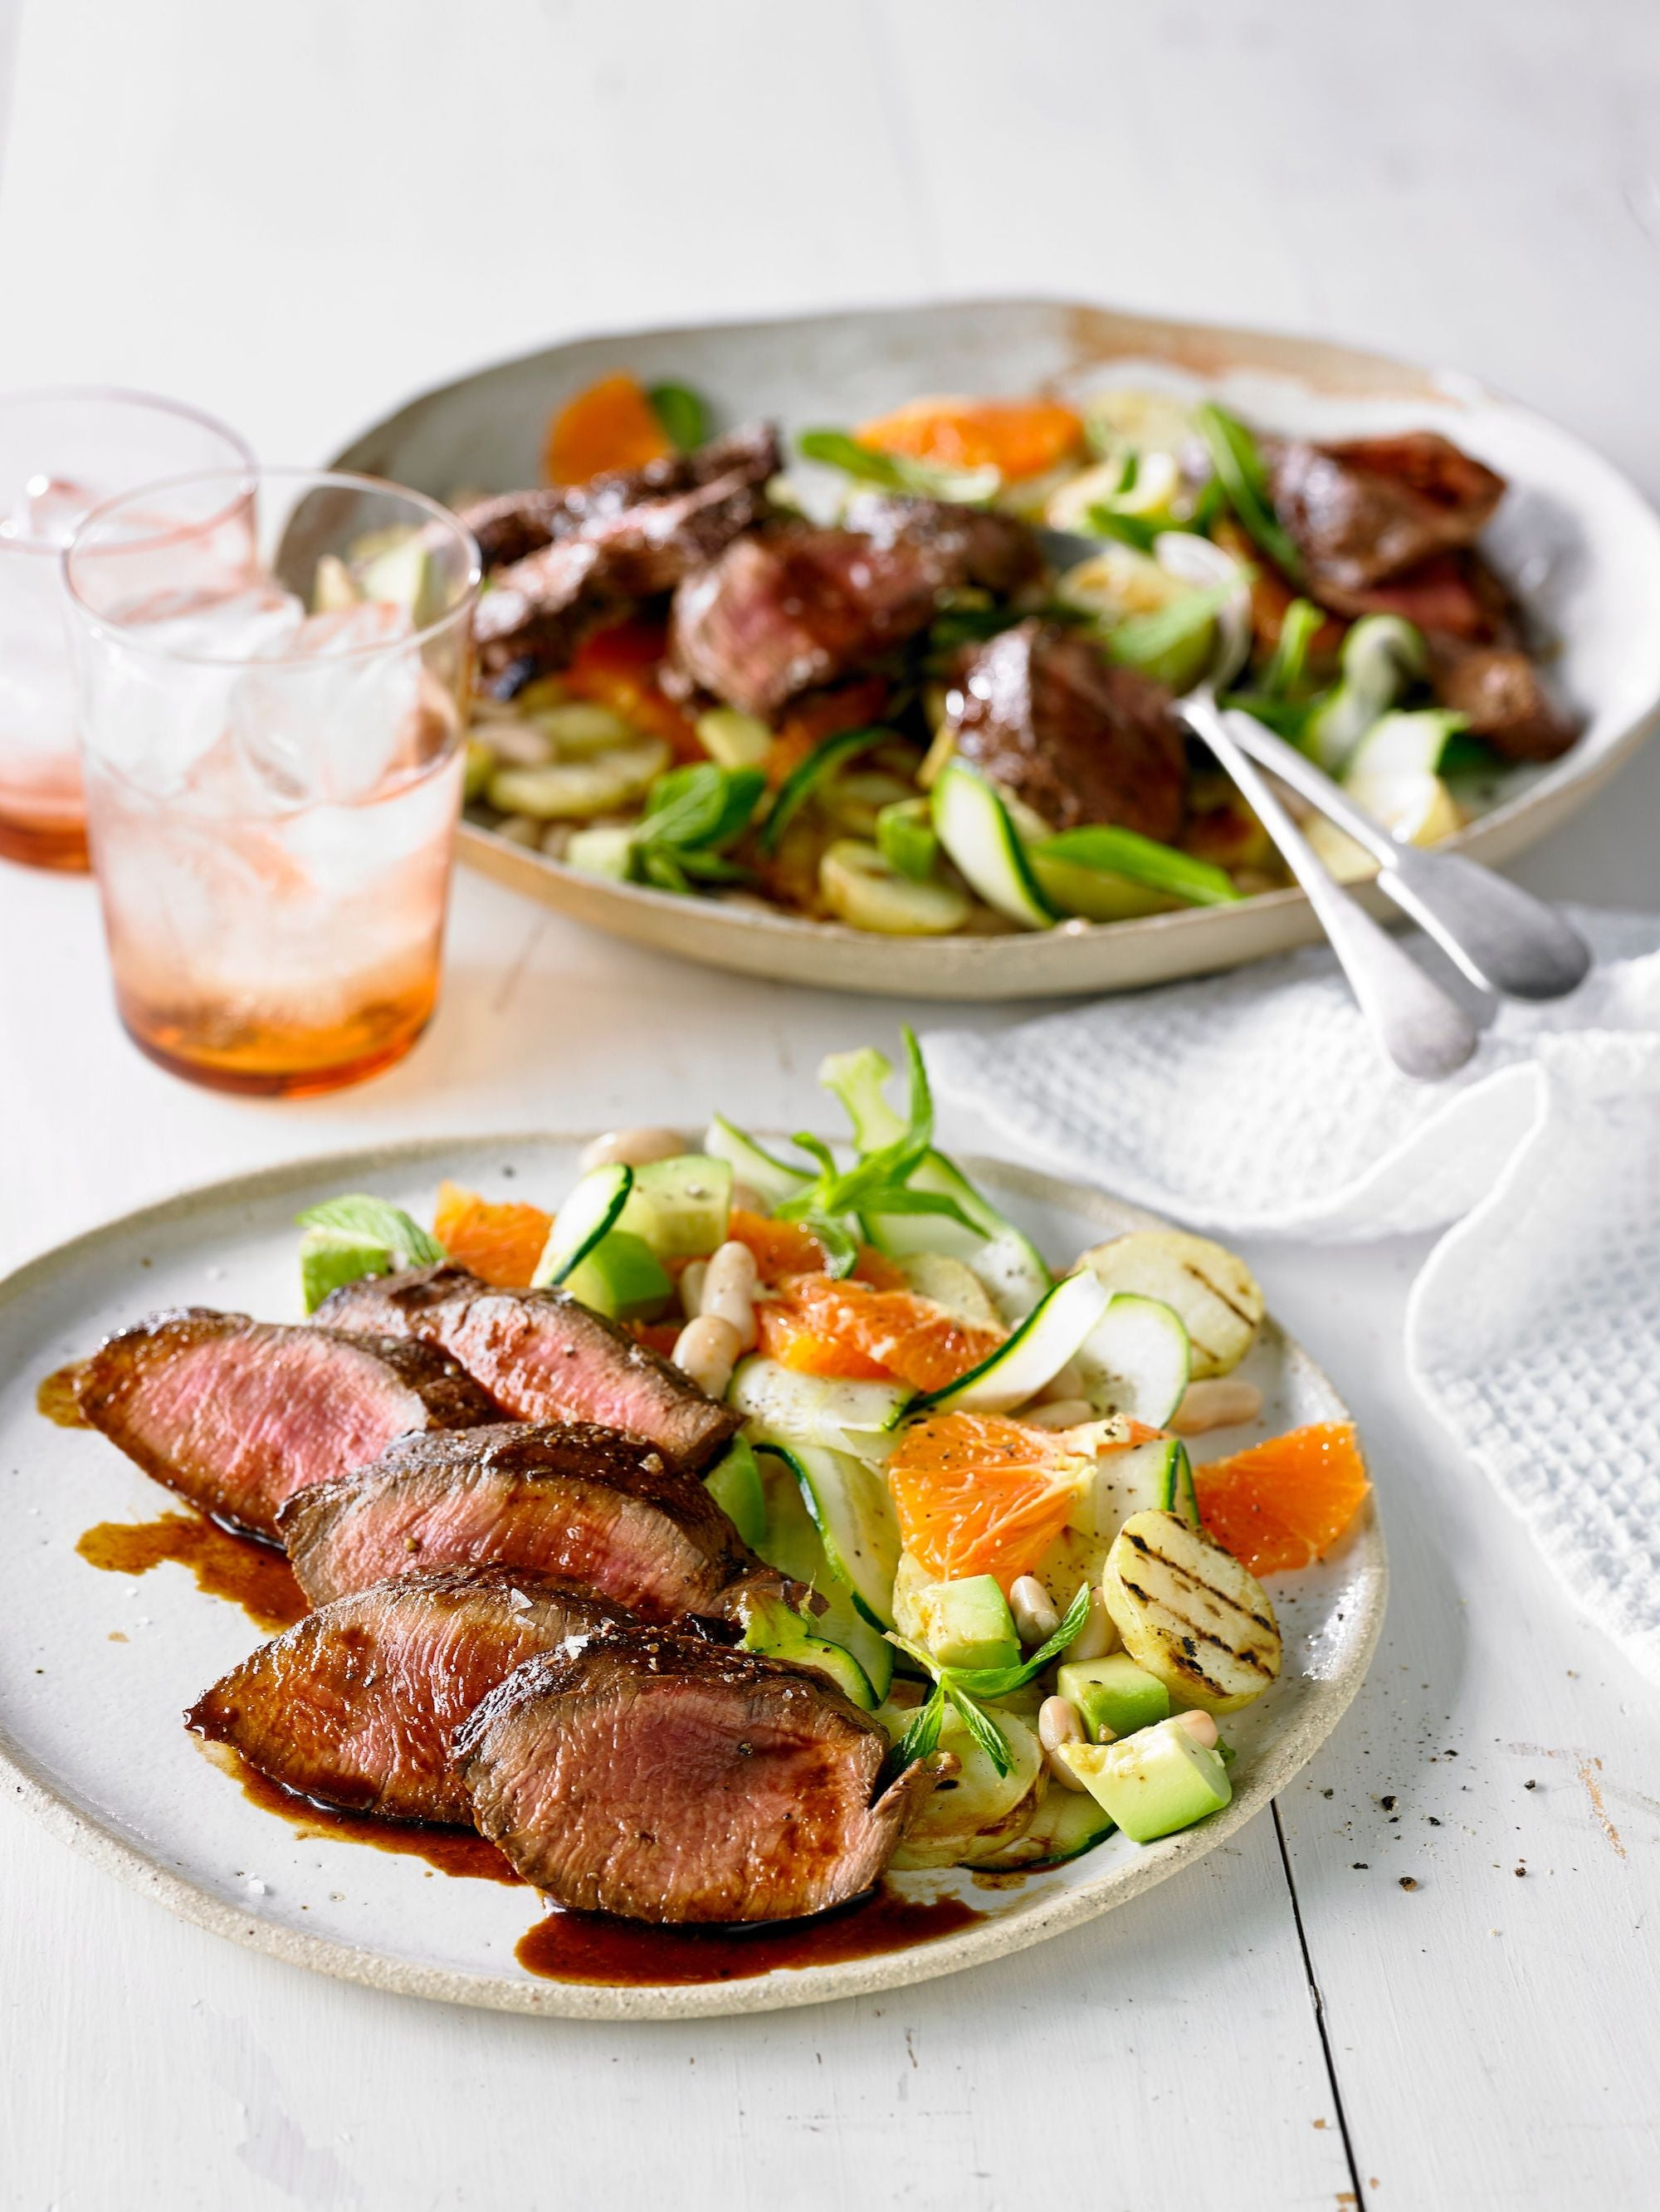 PERUVIAN-STYLE FLANK STEAK WITH SUMMER SALAD